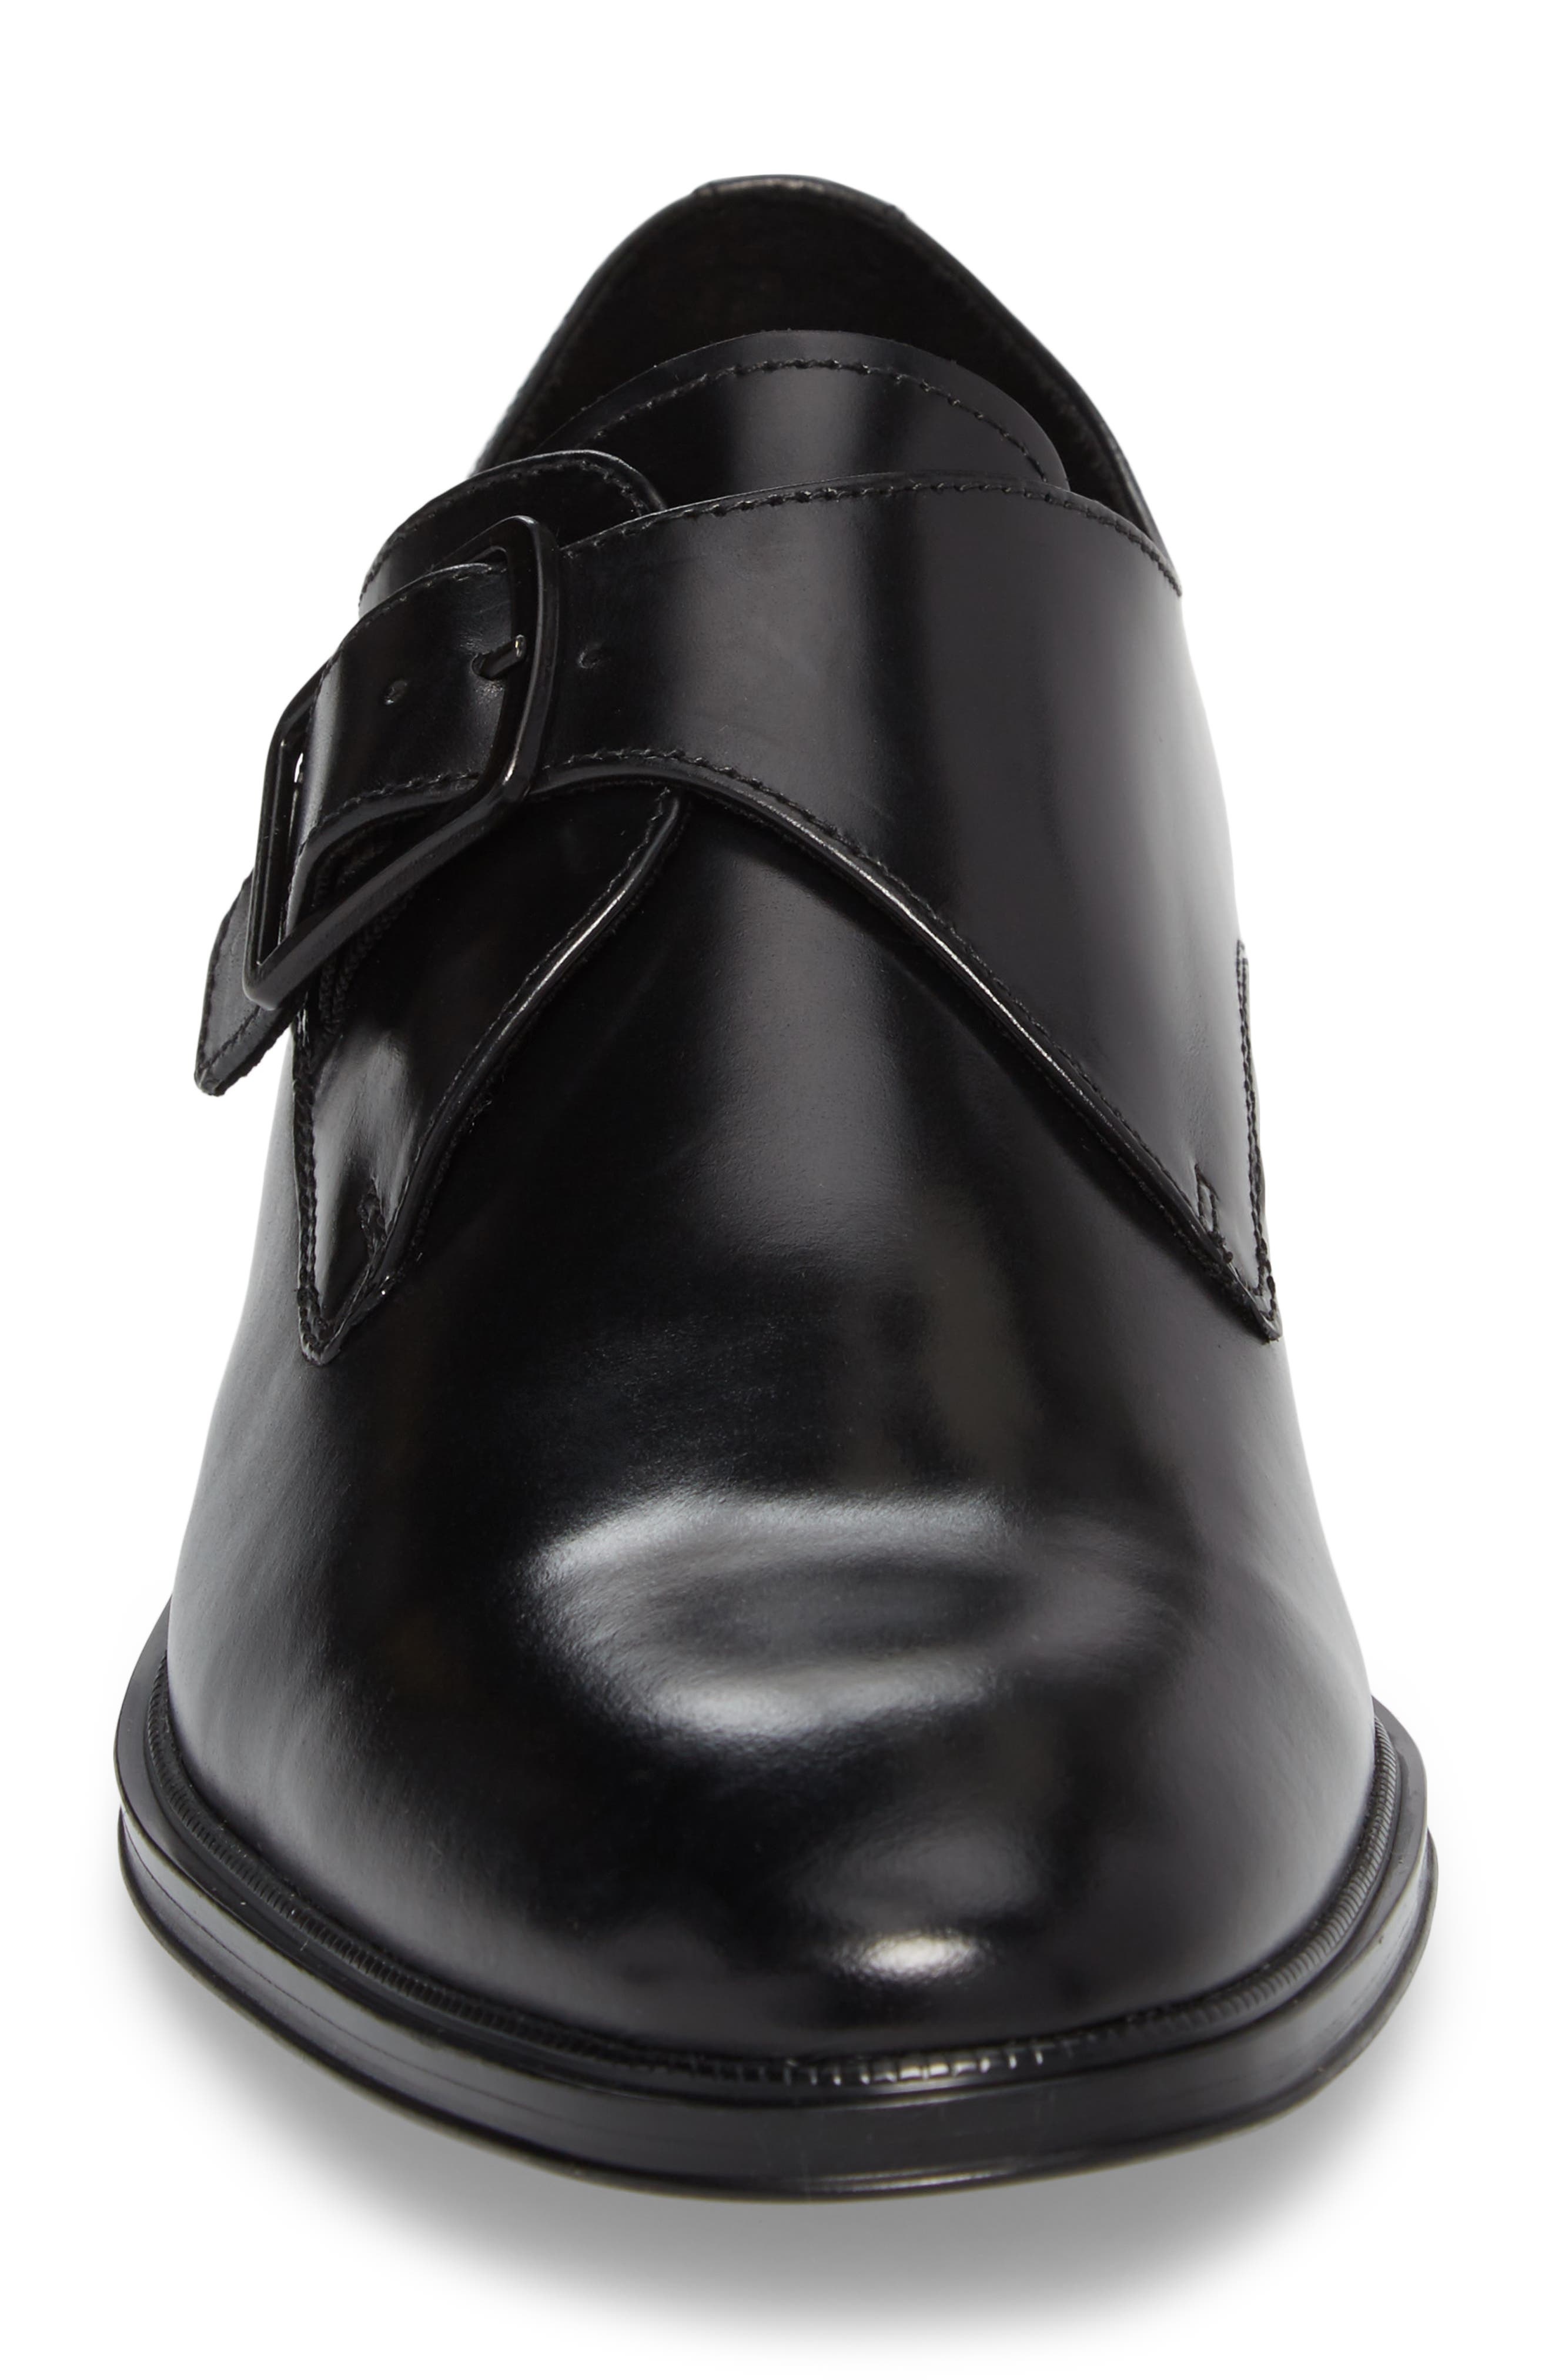 Tully Single Buckle Monk Shoe,                             Alternate thumbnail 4, color,                             Black Leather